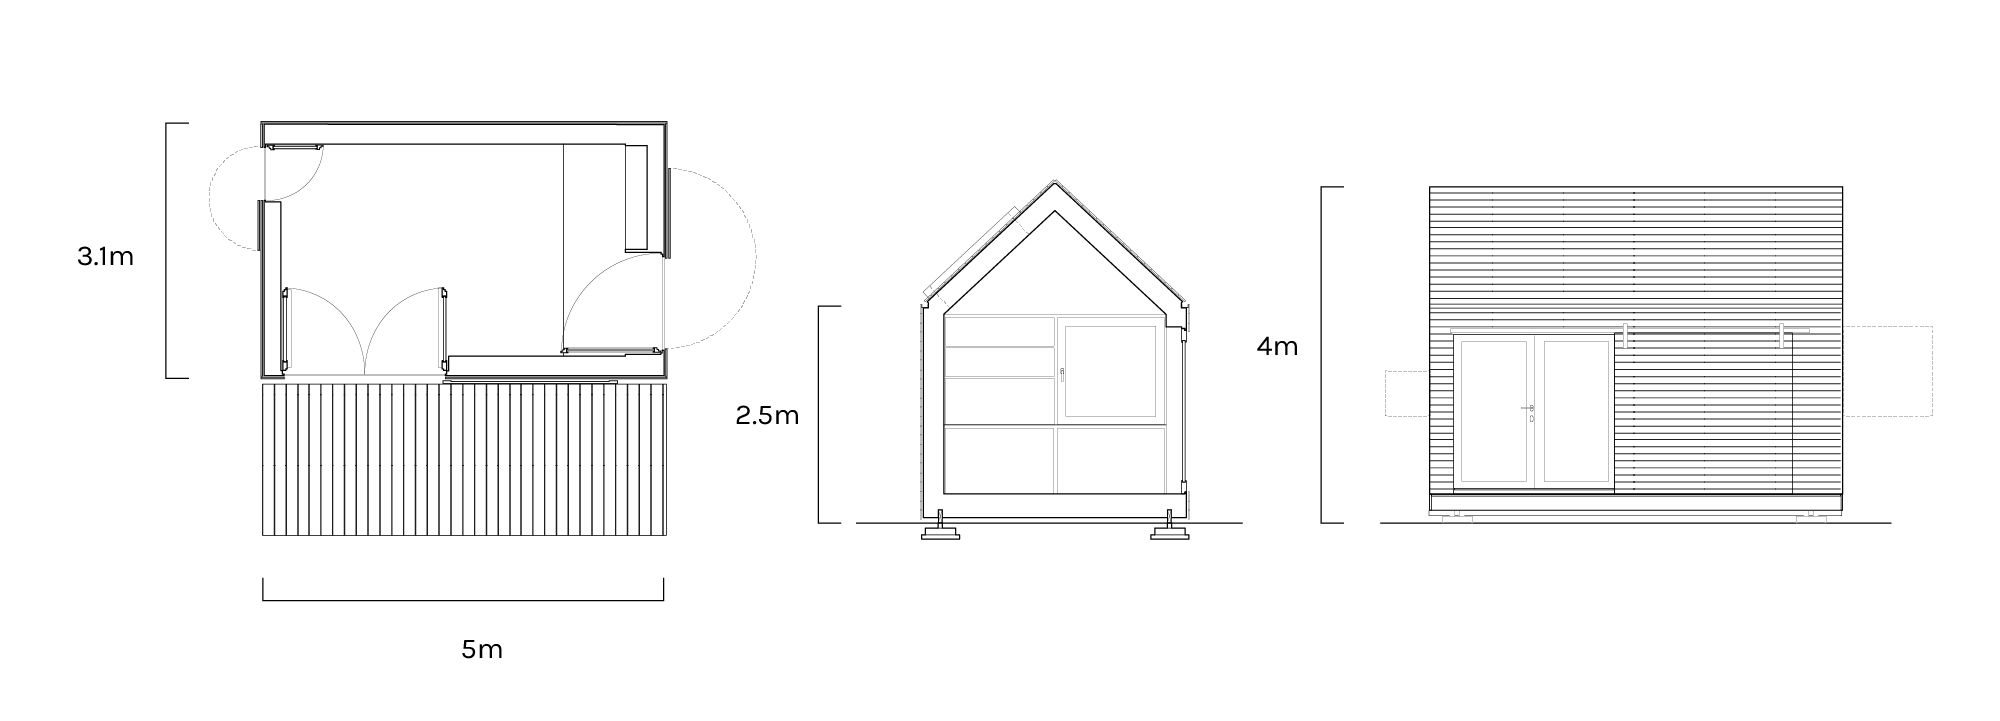 Open Source House Plans wikihouse.cc // studio | wikihouse | wikihouse | pinterest